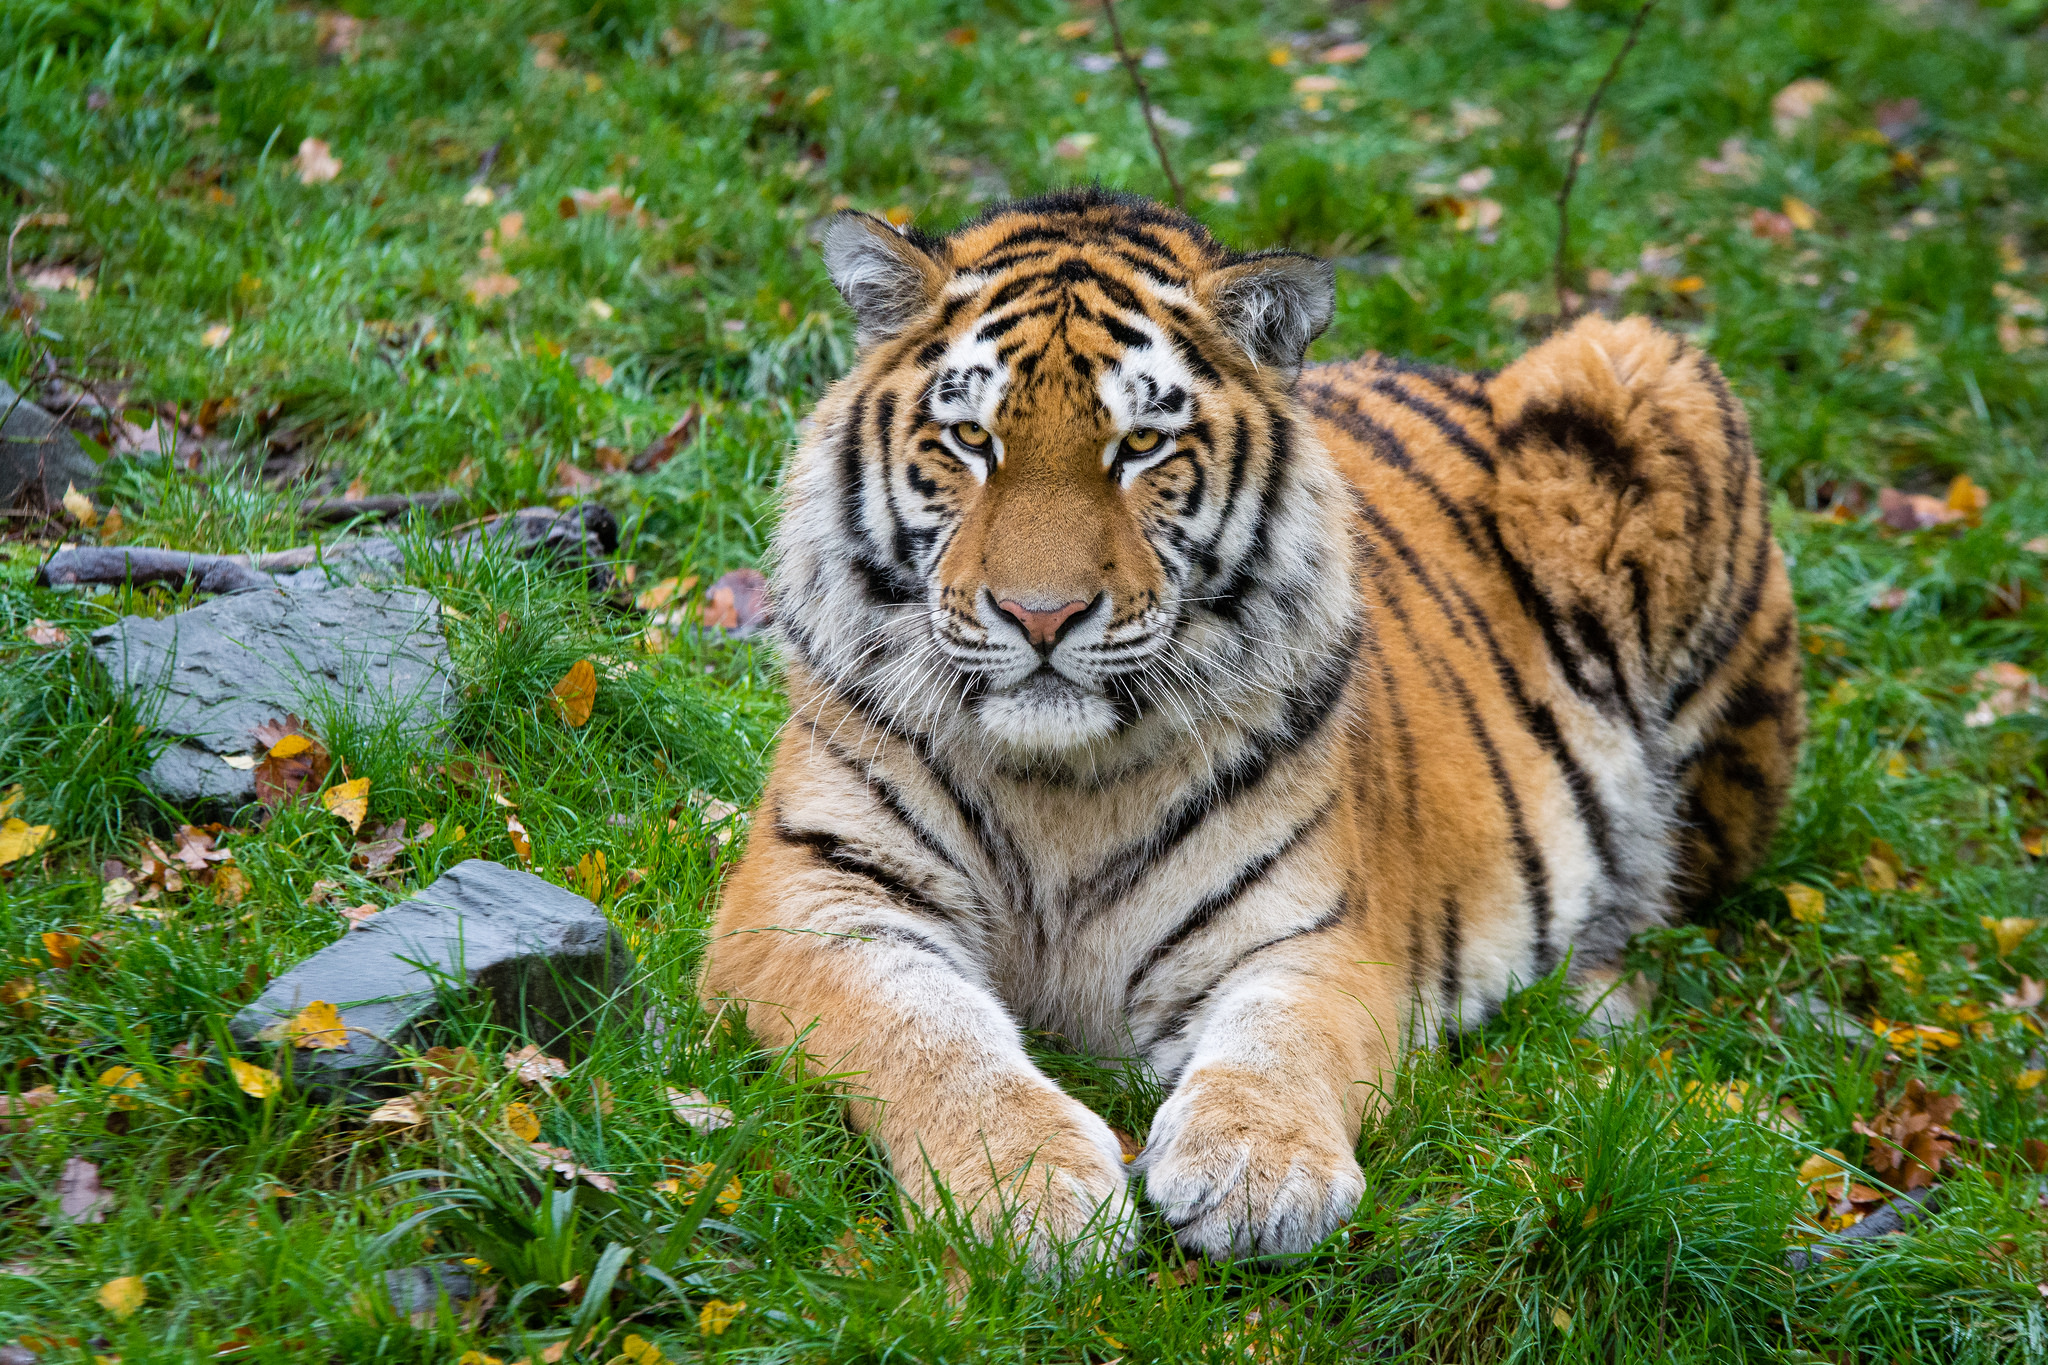 Free download high resolution image - free image free photo free stock image public domain picture -Tigre de Sibérie sur l'herbe verte